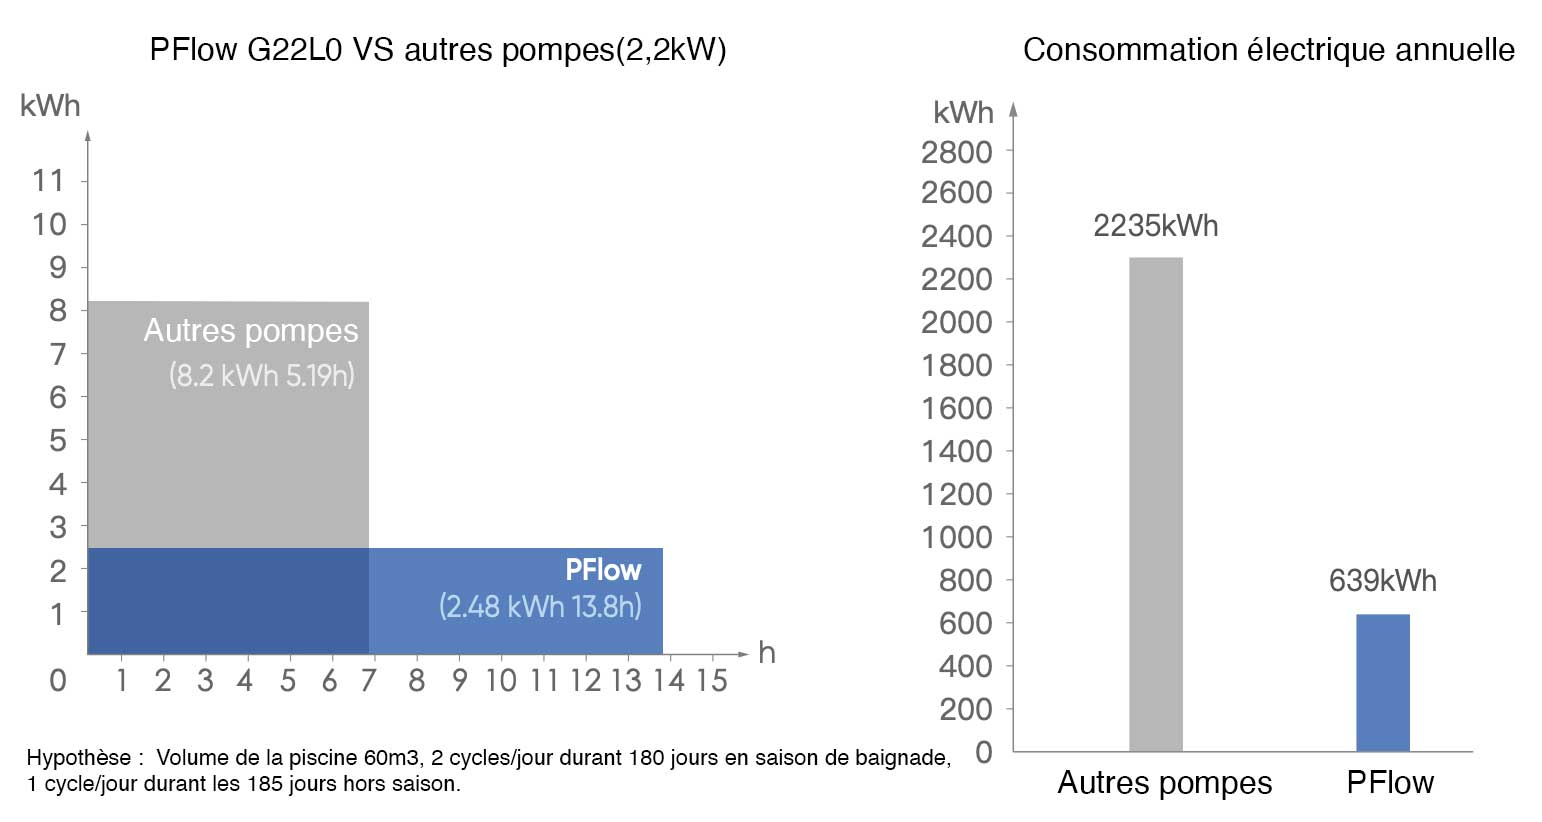 Consommation pFlow